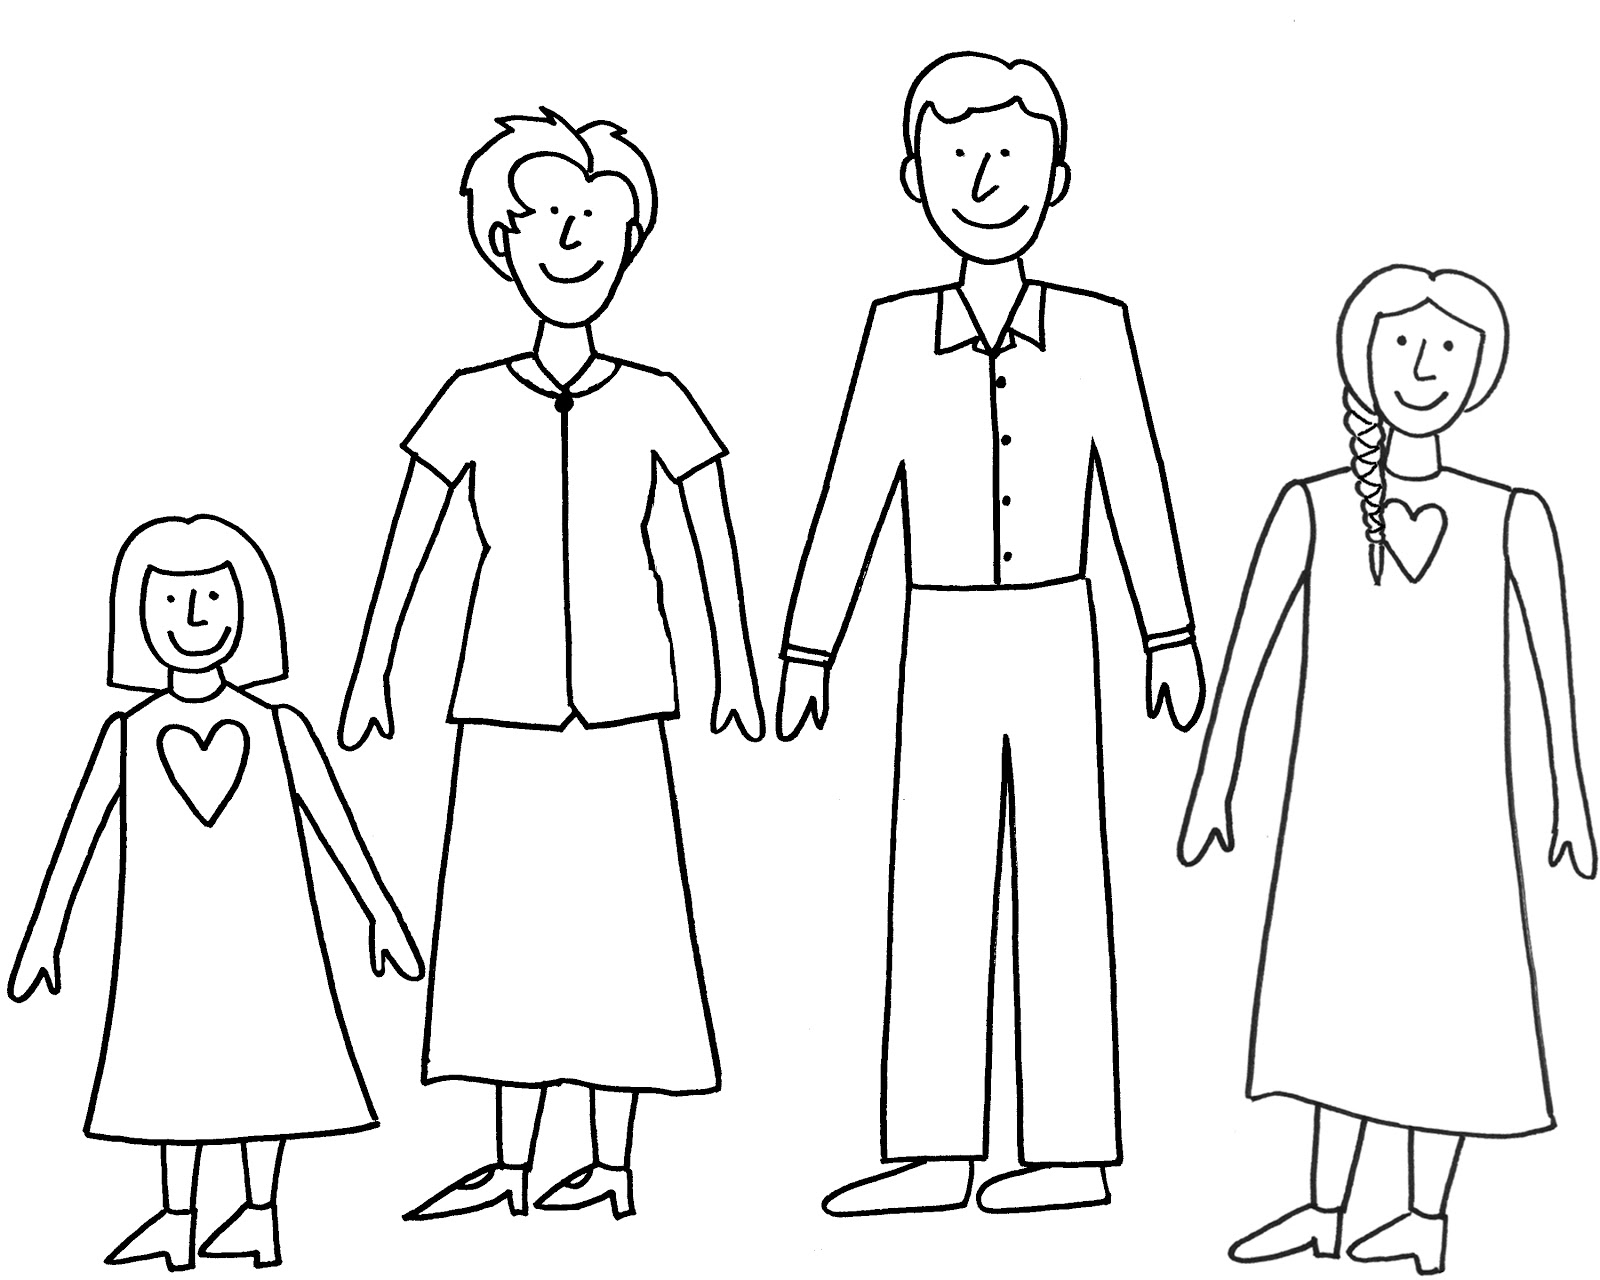 Easy To Draw Family Sketch Coloring Page